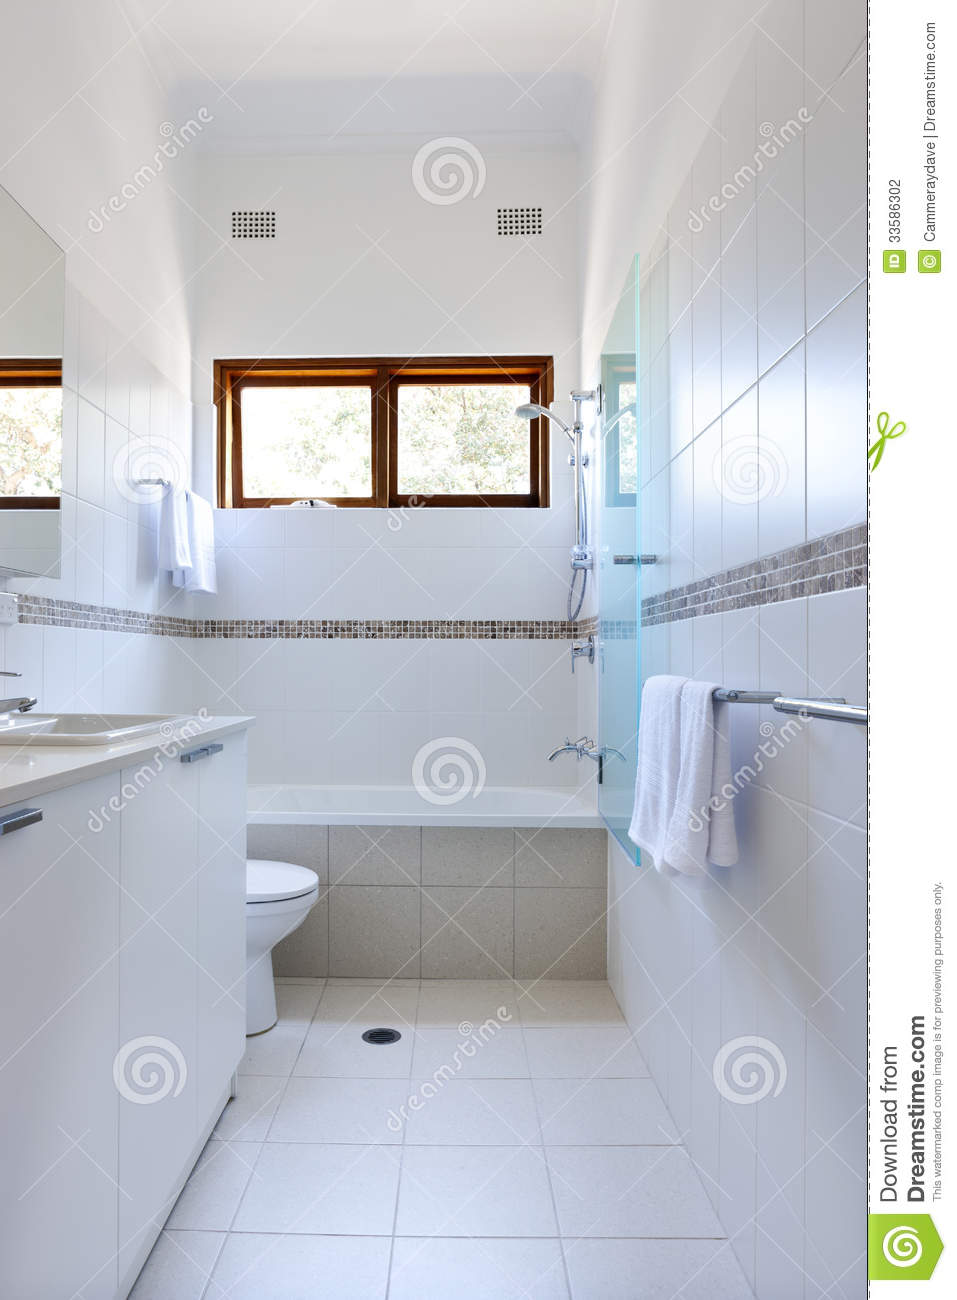 White Bathroom Tiles Stock Photography Image 33586302